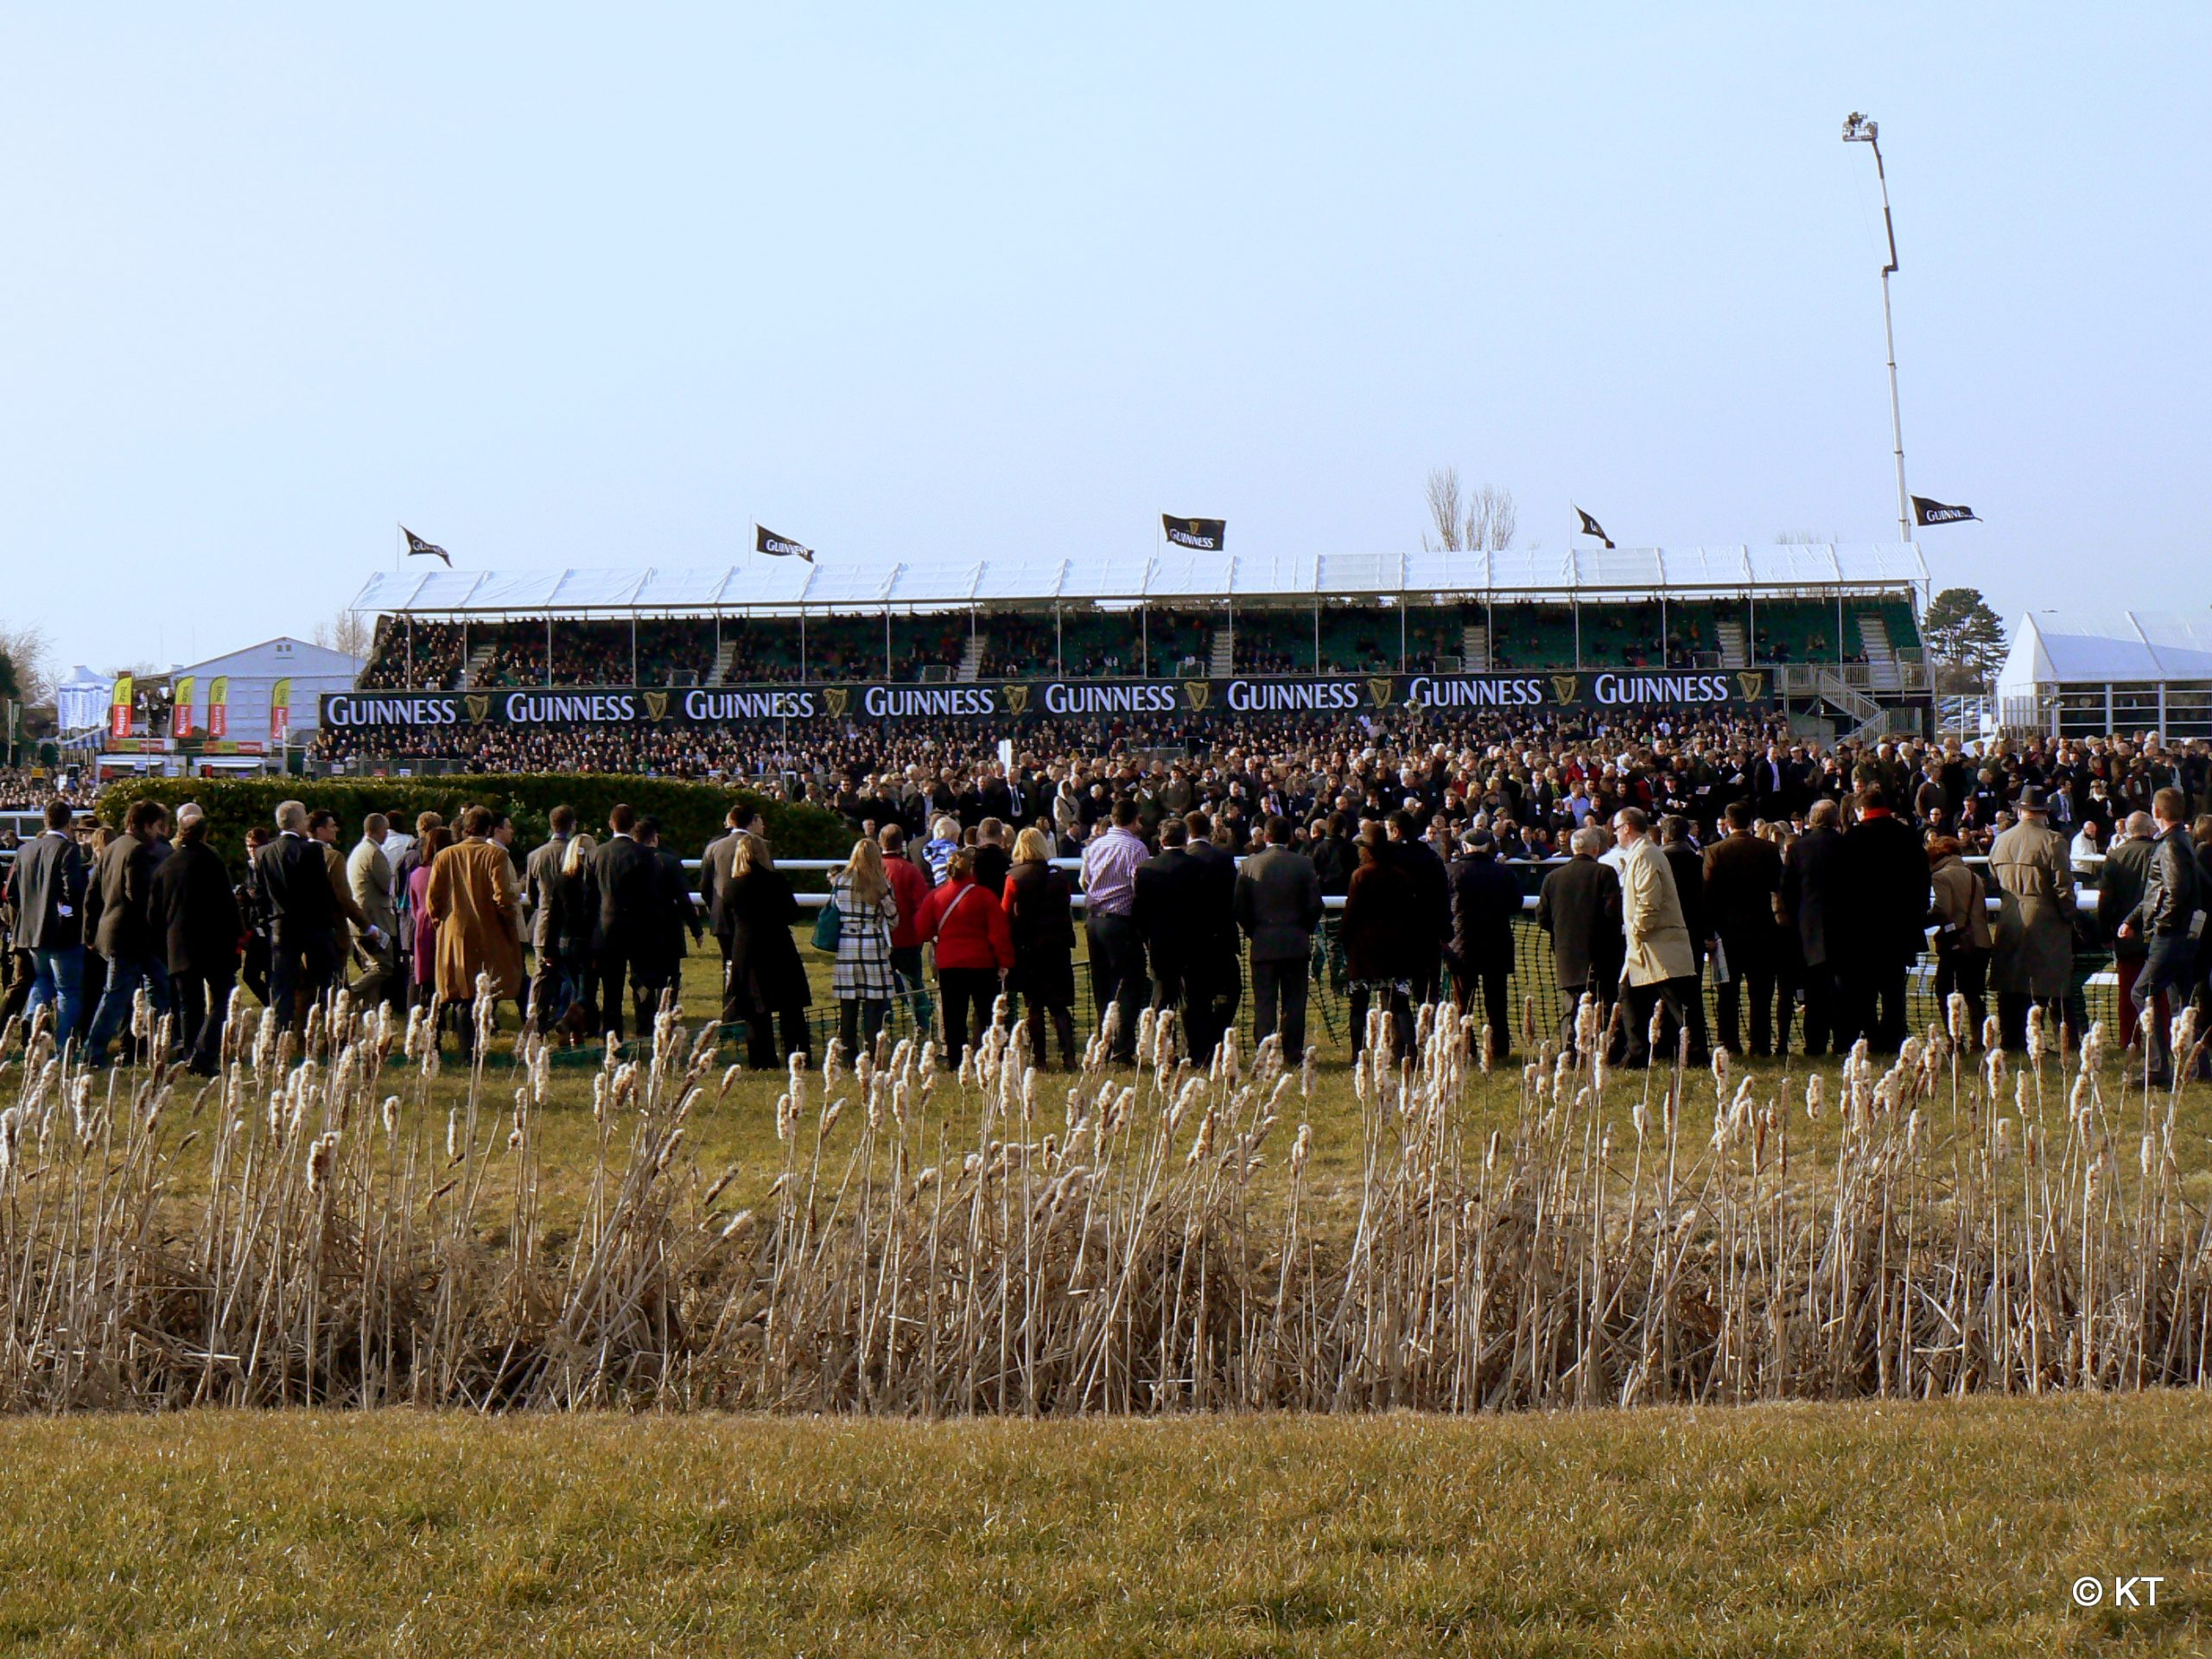 Crowds watch from the Cross County Course at Cheltenham Racecourse in Cheltenham, Gloucestershire, England